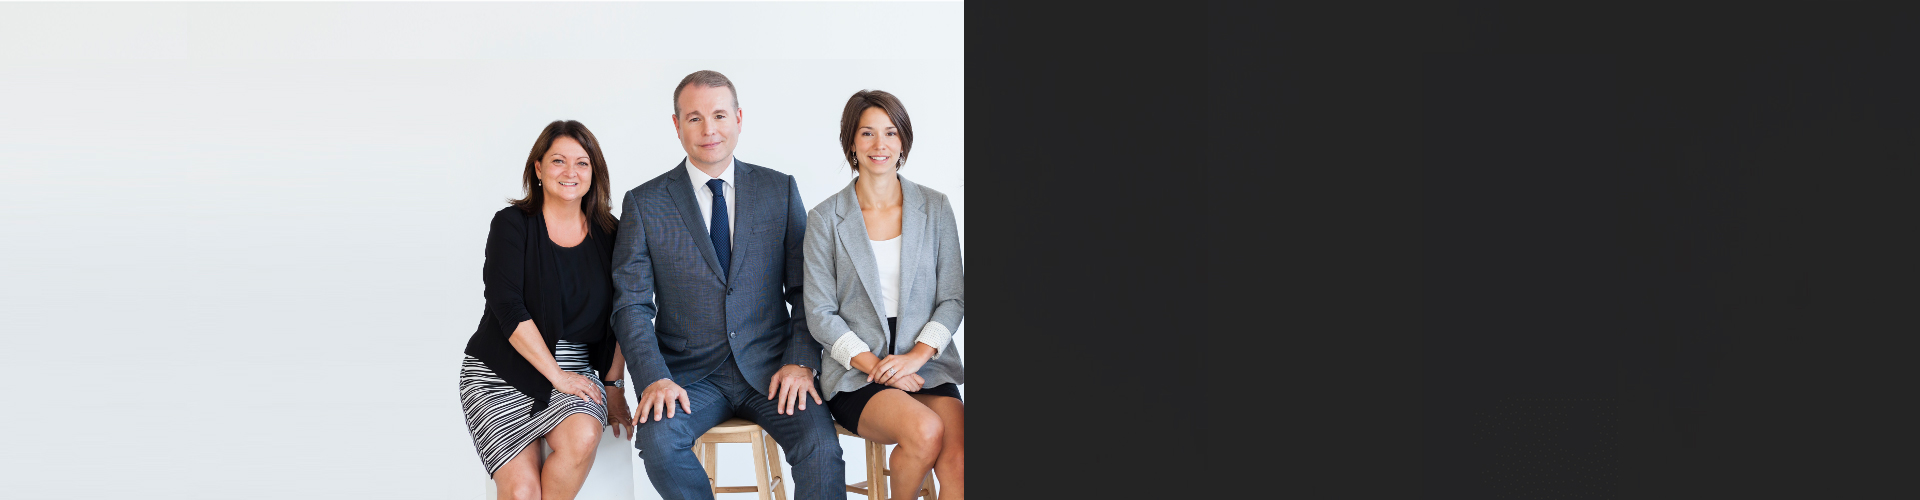 equipe-avocats-dion